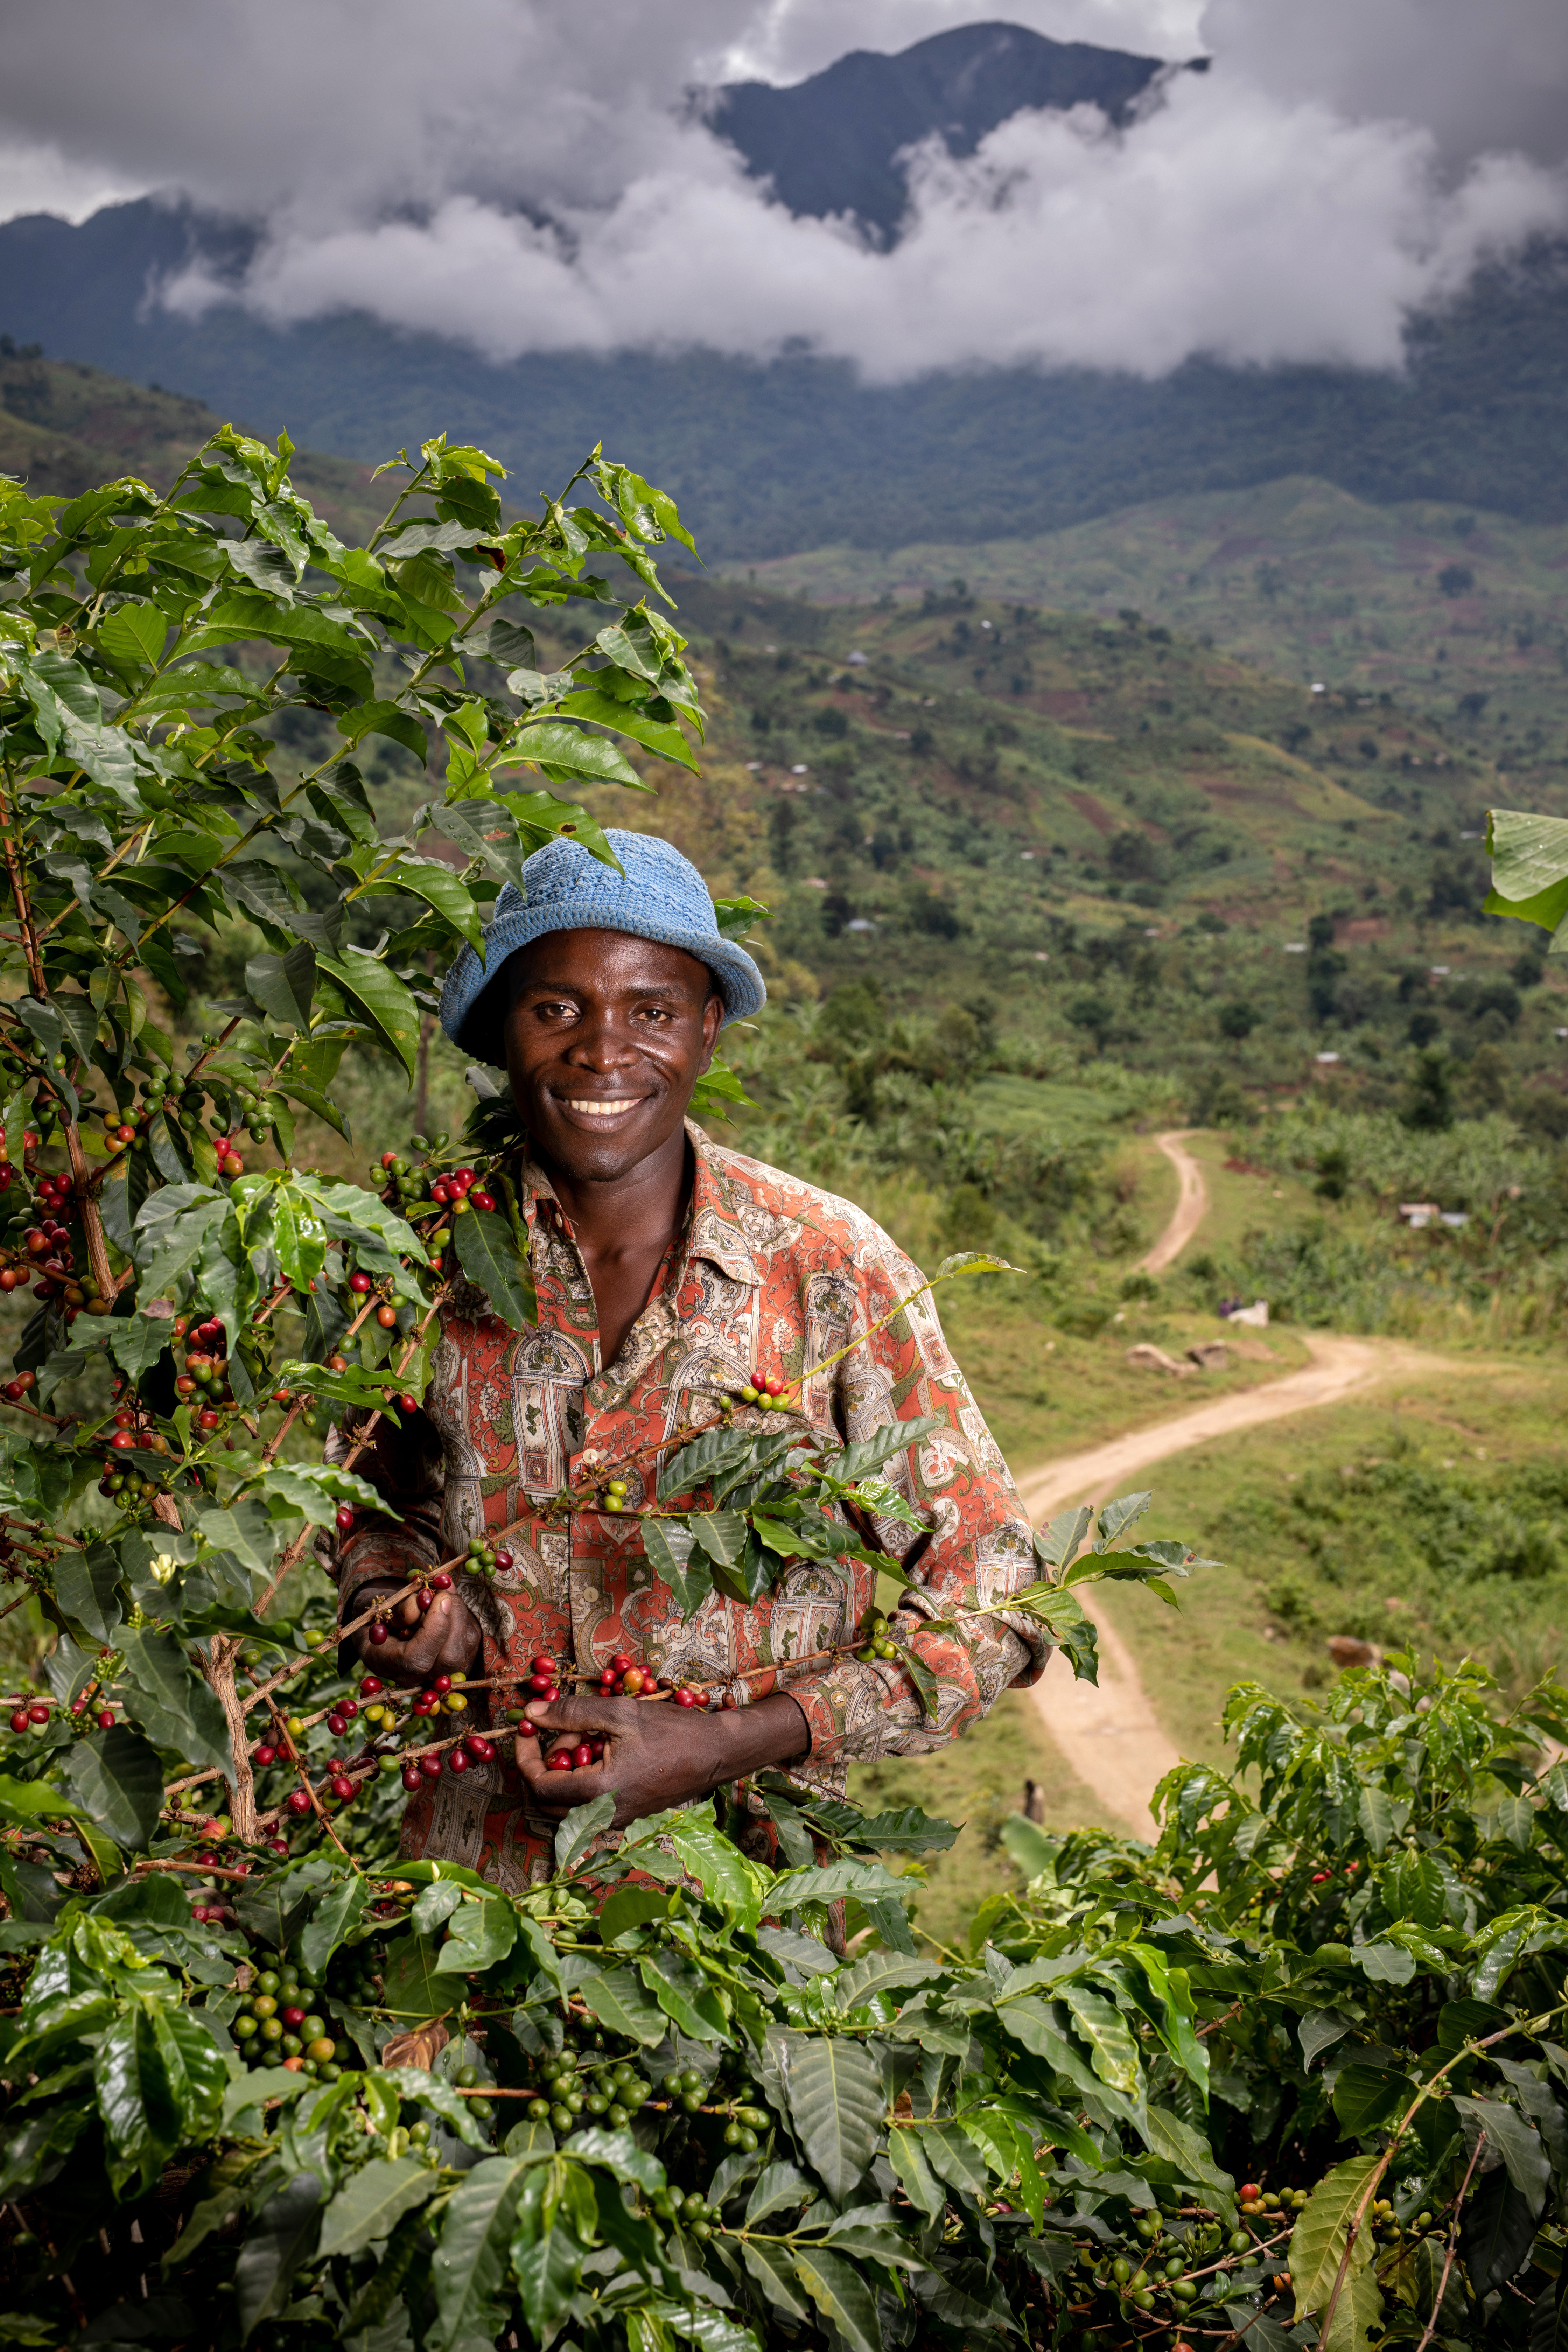 Joseph Kirimbwa, a 33 years old farmer member of the Nespresso AAA program to improve the yield and quality of coffee produced in the Rwenzori region of western Uganda, is harvesting coffee cherries in his coffee plantation in Mbata, a small village north of Rwenzori on March 28th, 2019.